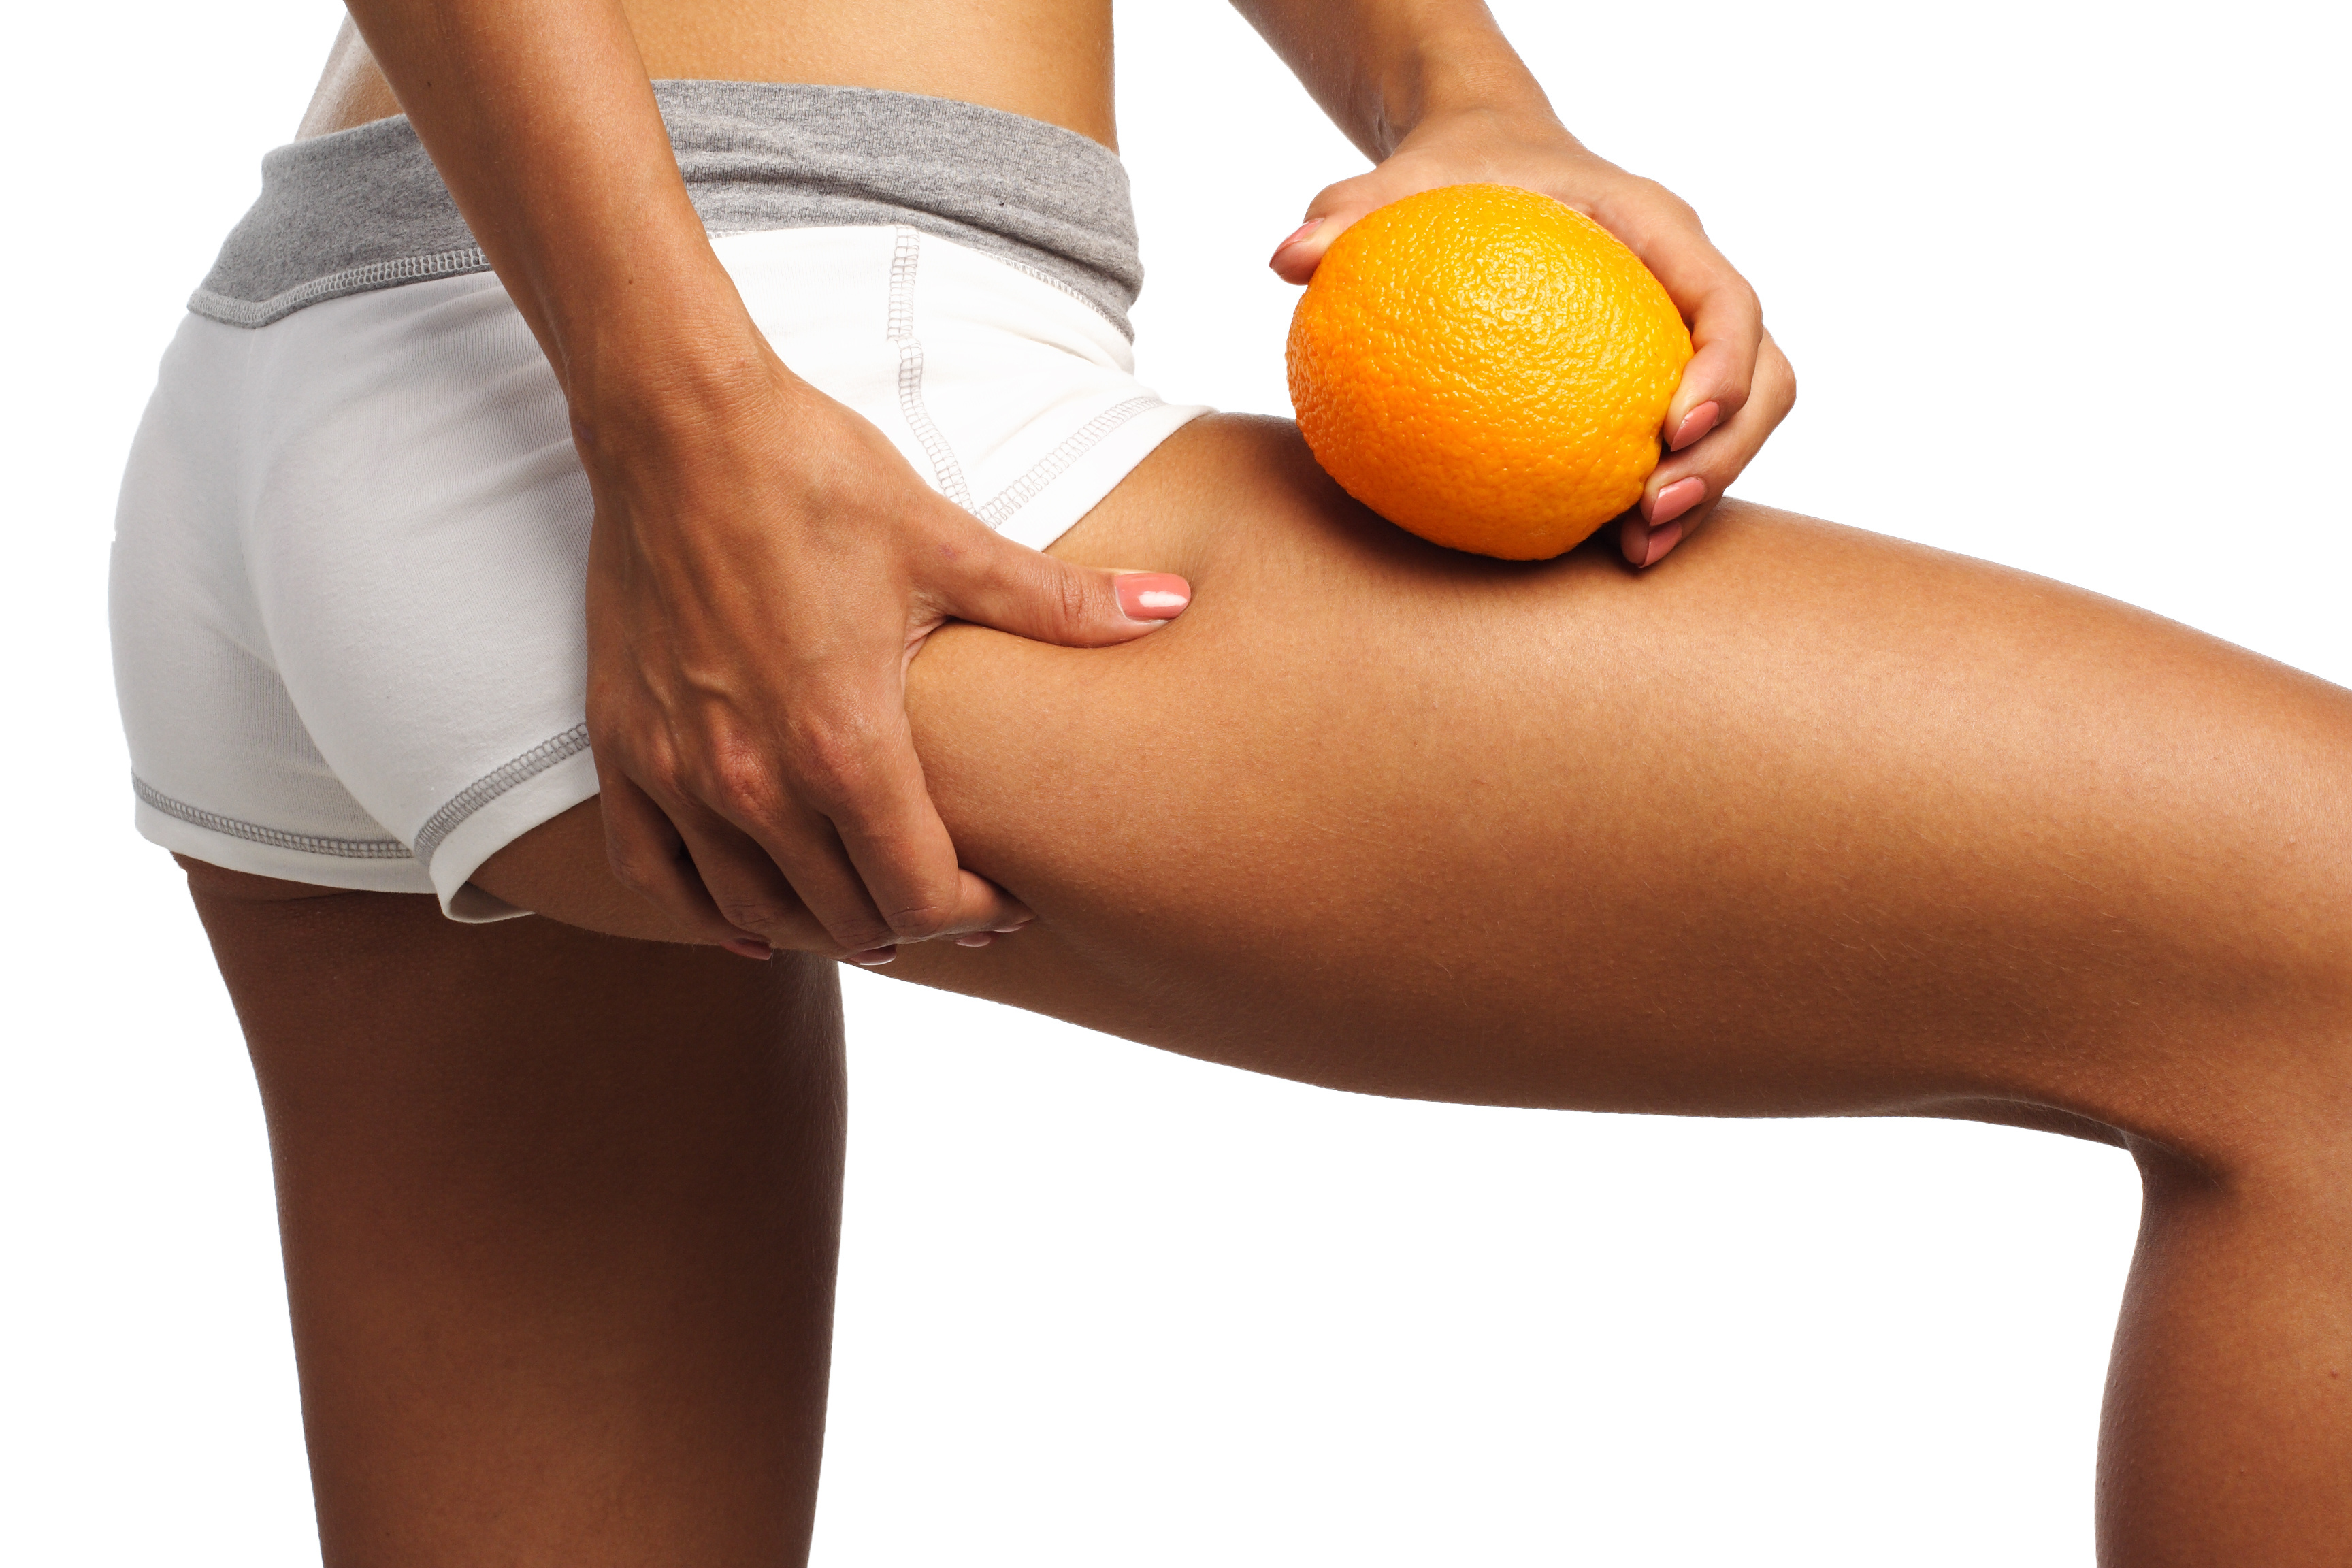 Seven facts about cellulite you didn't know